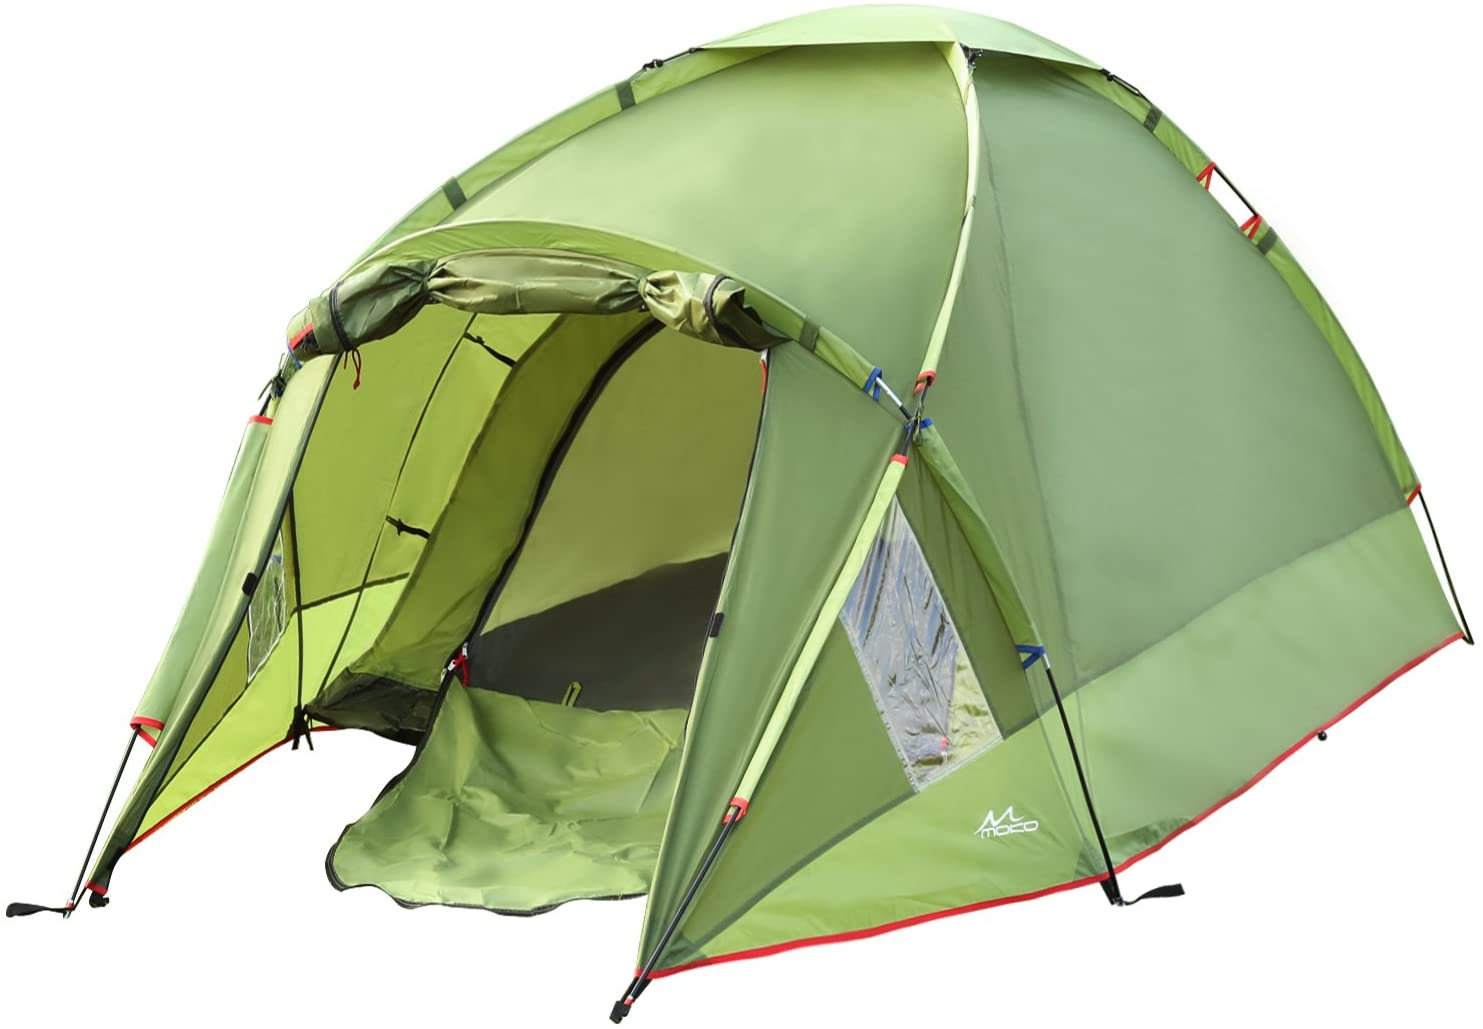 Moko Backpacking Tent with Portable Design